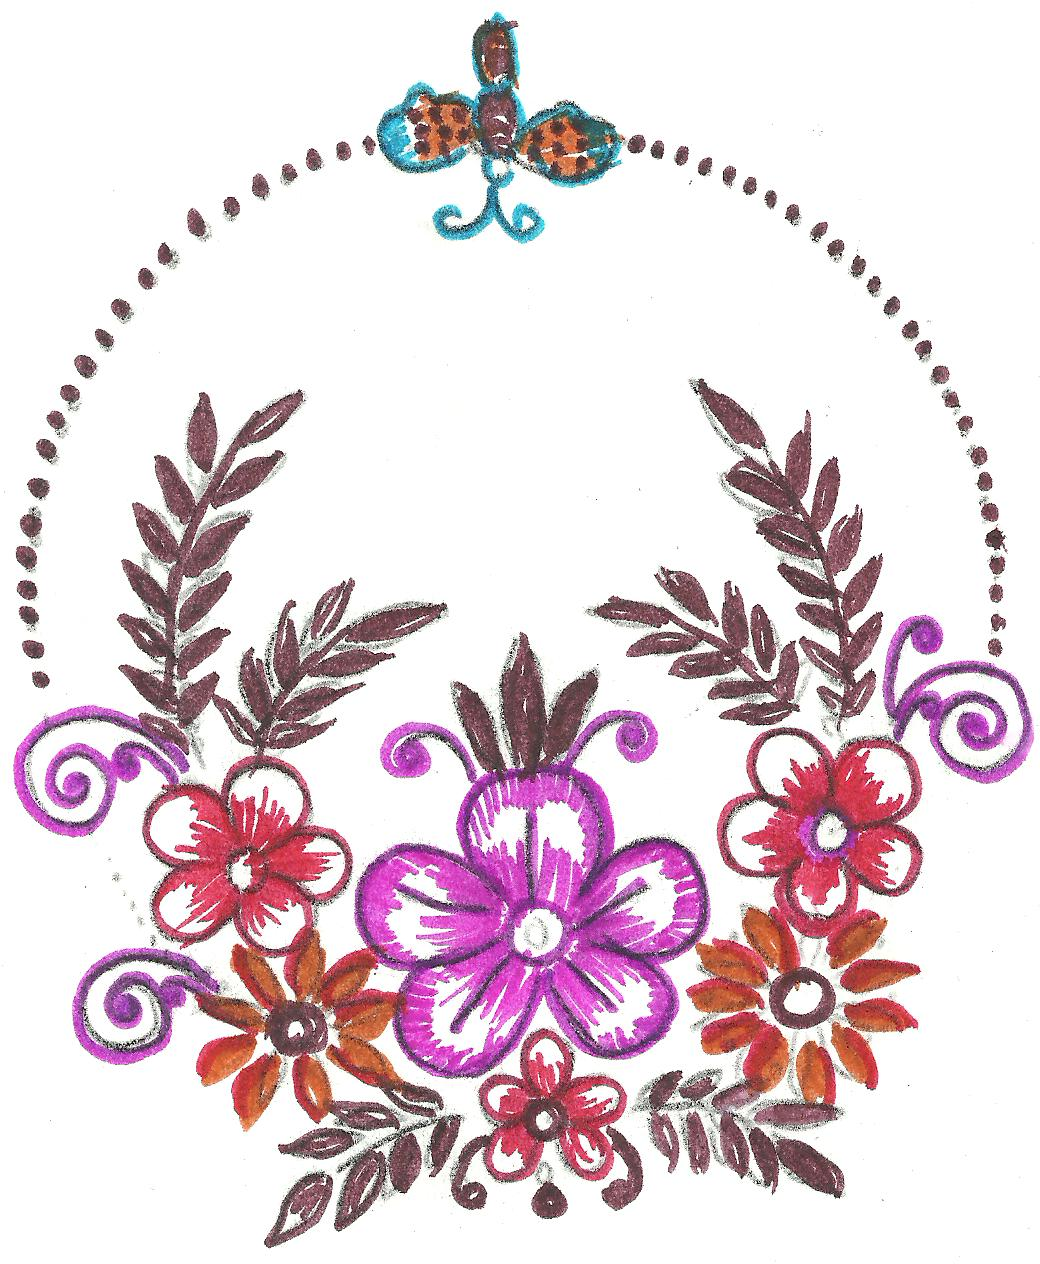 Mehndi,sketch,embroidery,painting: embroidery